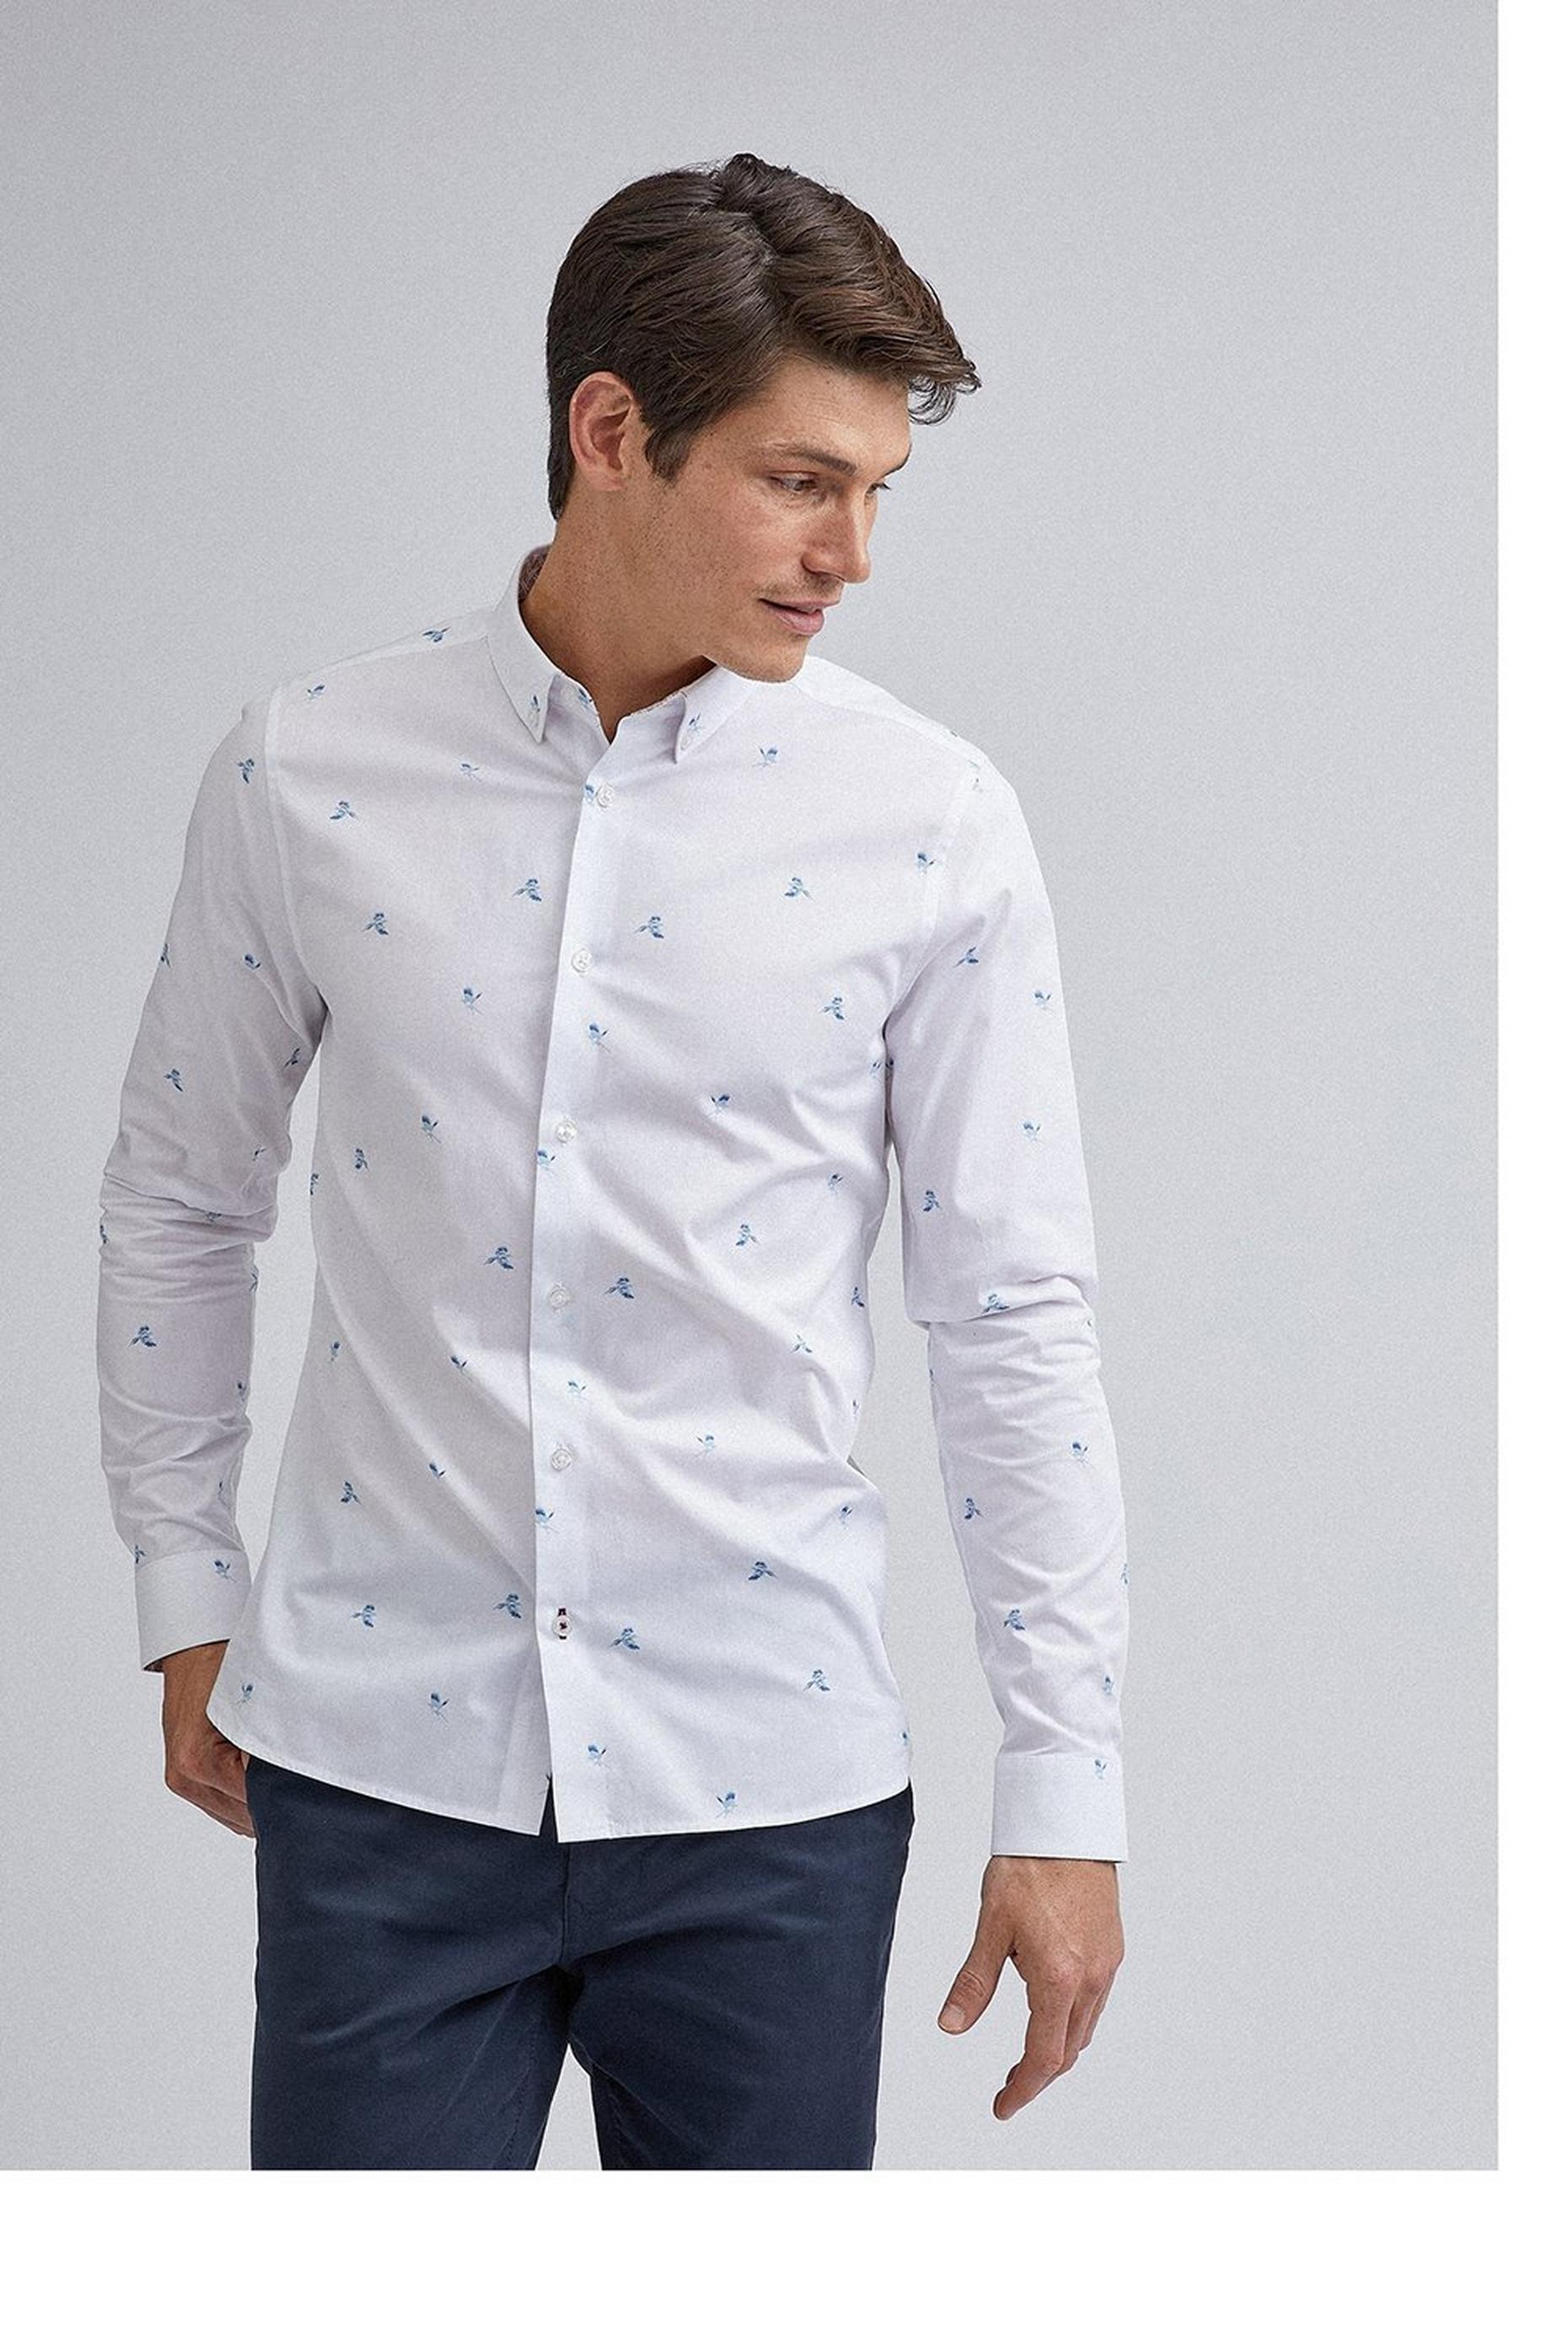 White Flying Bird Shirt